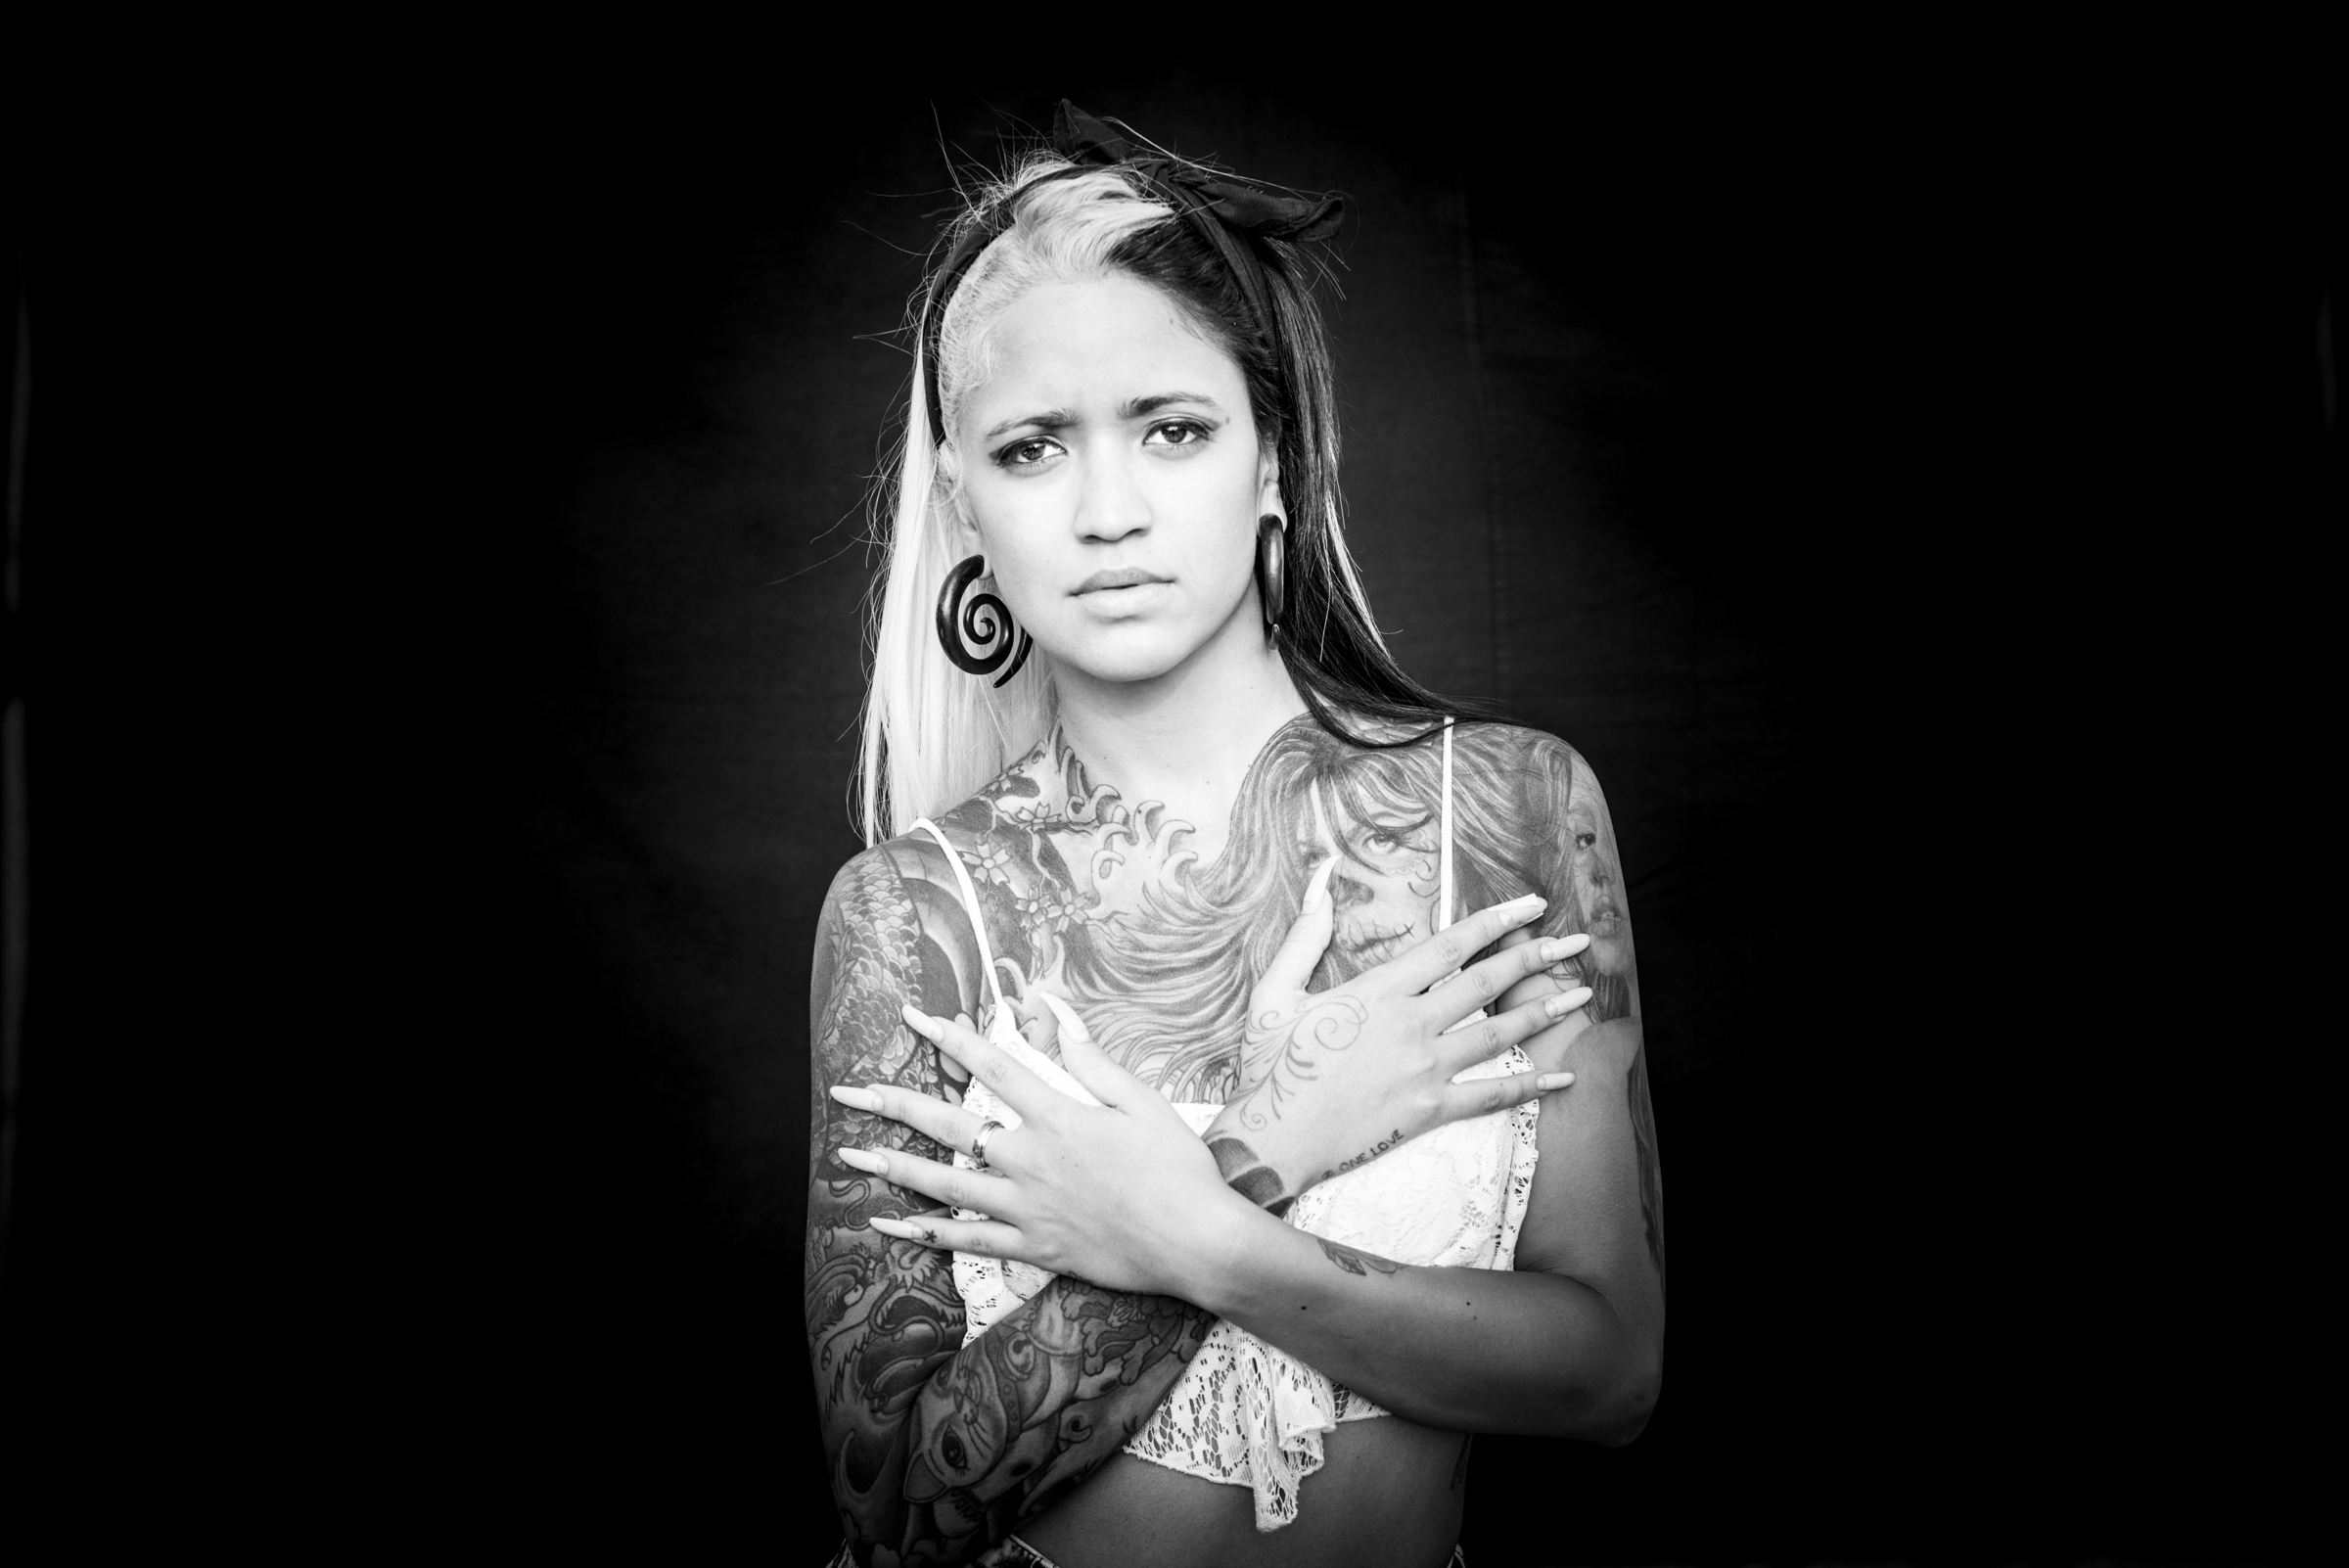 Woman with long nails and tattoos photographed on black background